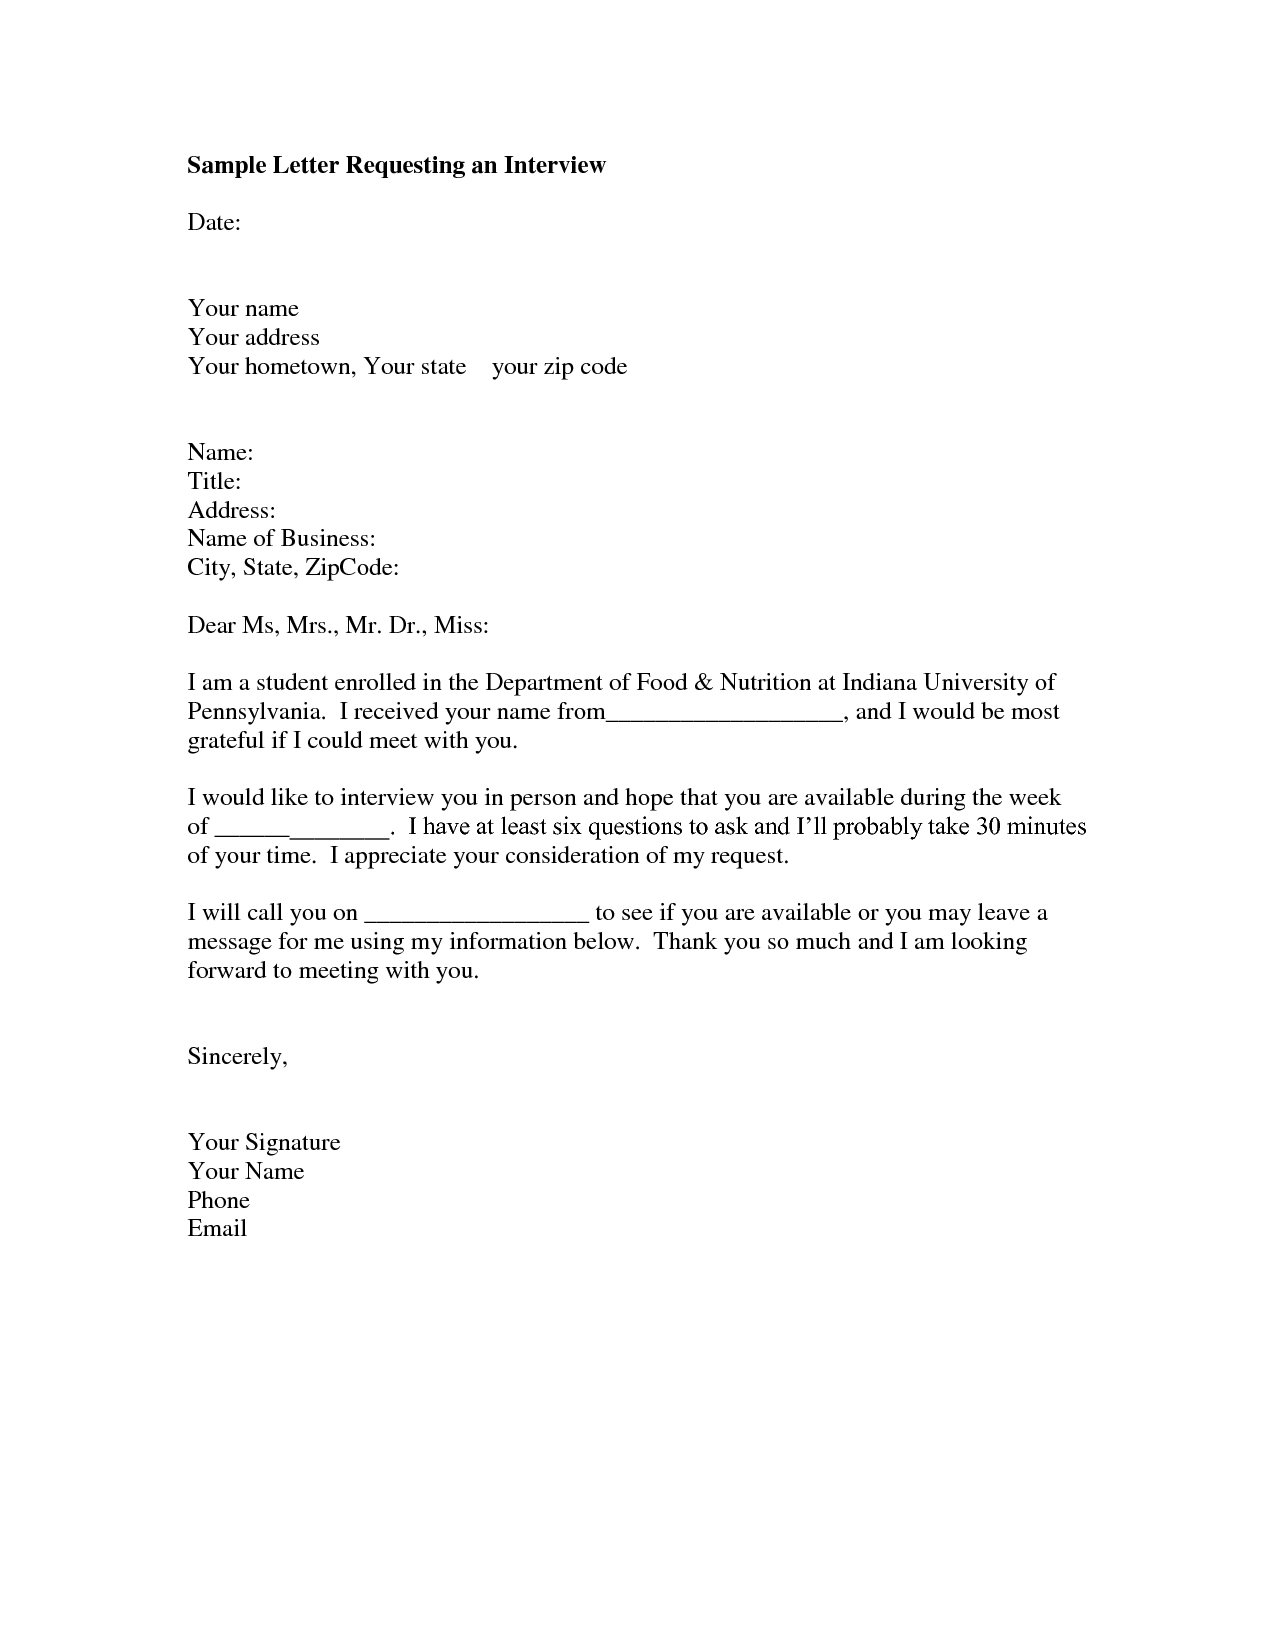 Interview request letter sample format of a letter you can use to interview request letter sample format of a letter you can use to request an interview with a prospecitive employer spiritdancerdesigns Images